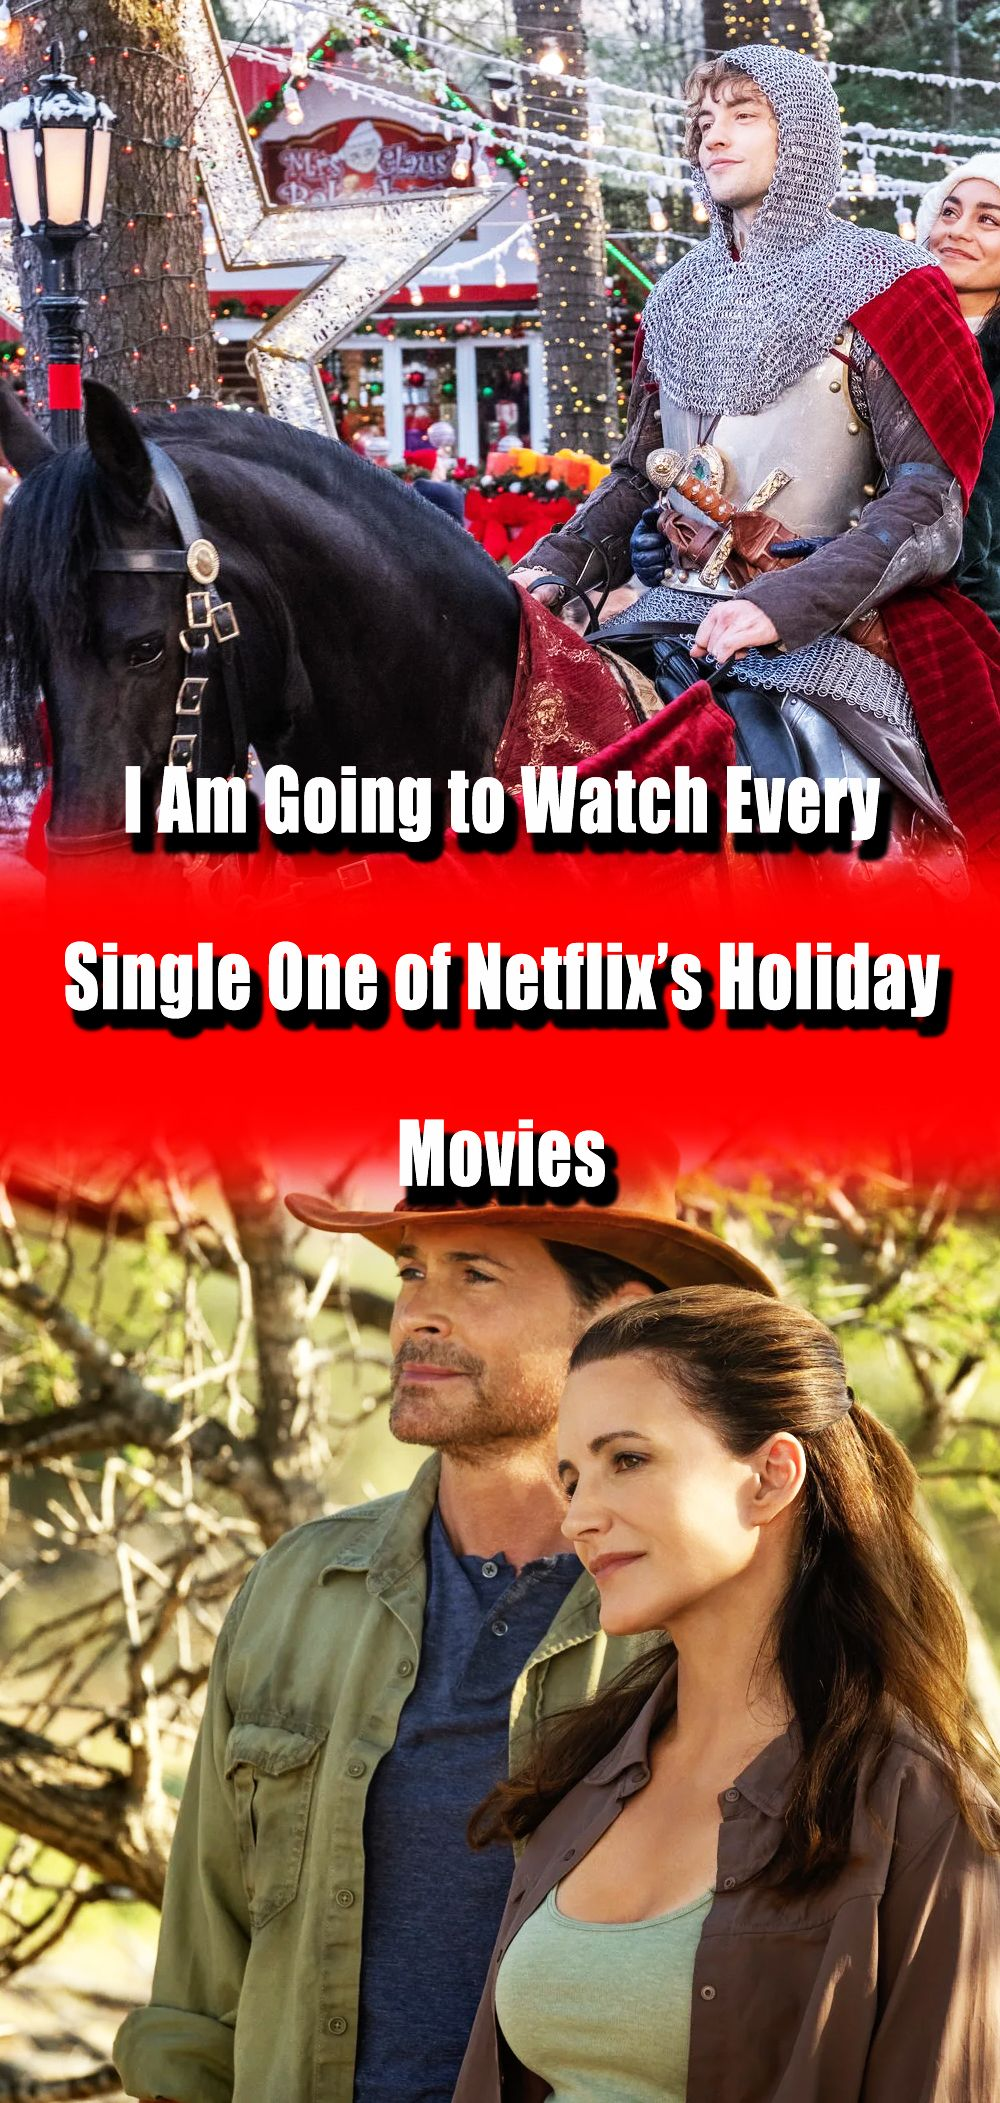 I Am Going to Watch Every Single One of Netflix's Holiday